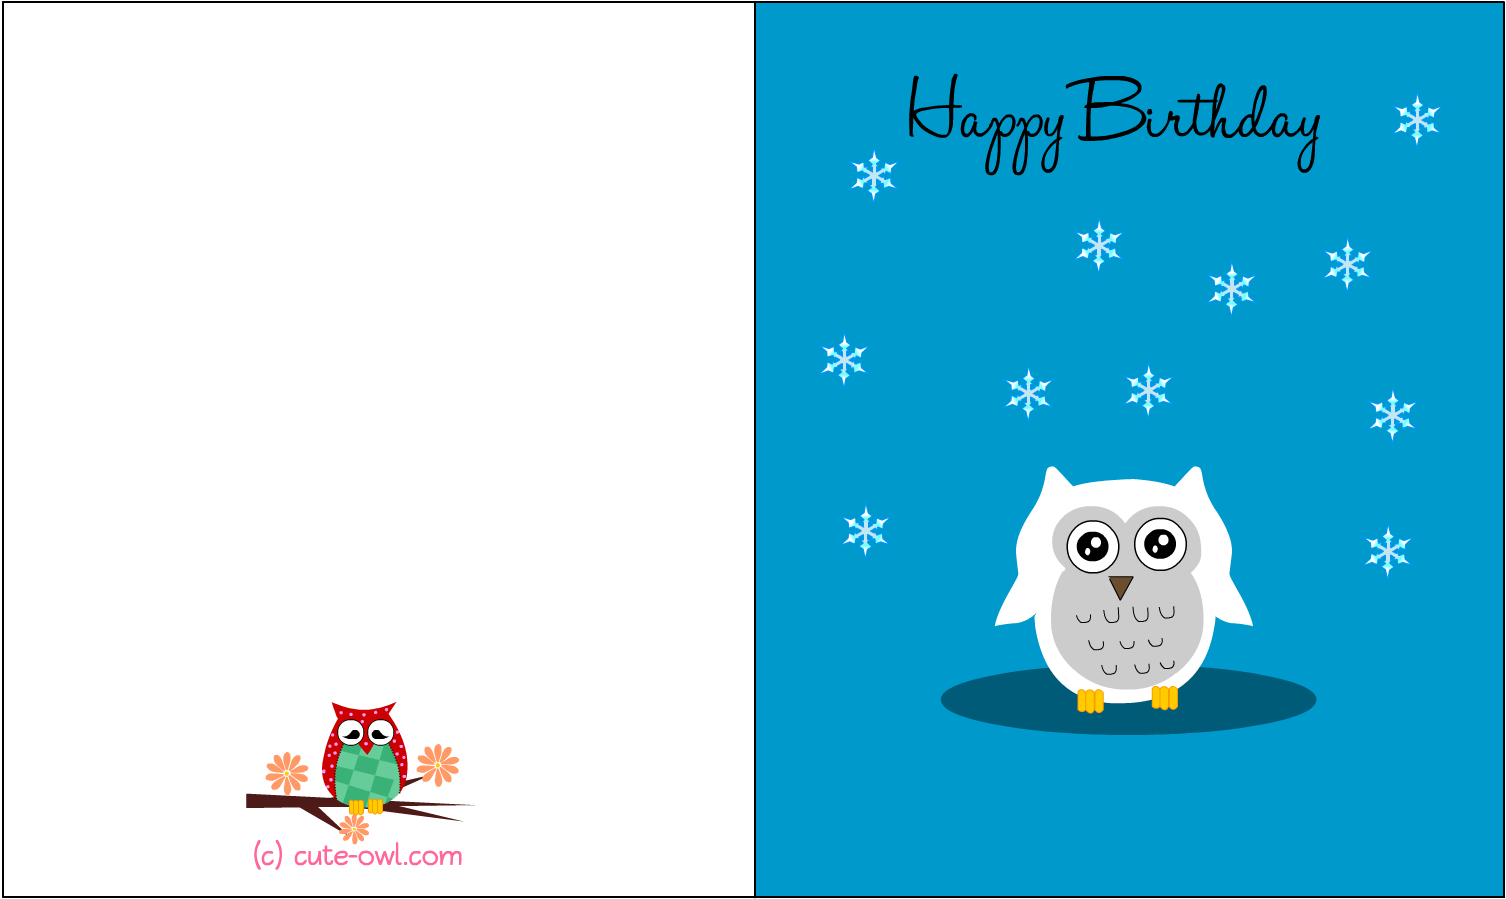 graphic about Birthday Clipart Free Printable titled No cost Printable Lovely Owl Birthday Playing cards - Lovable Pleased Birthday